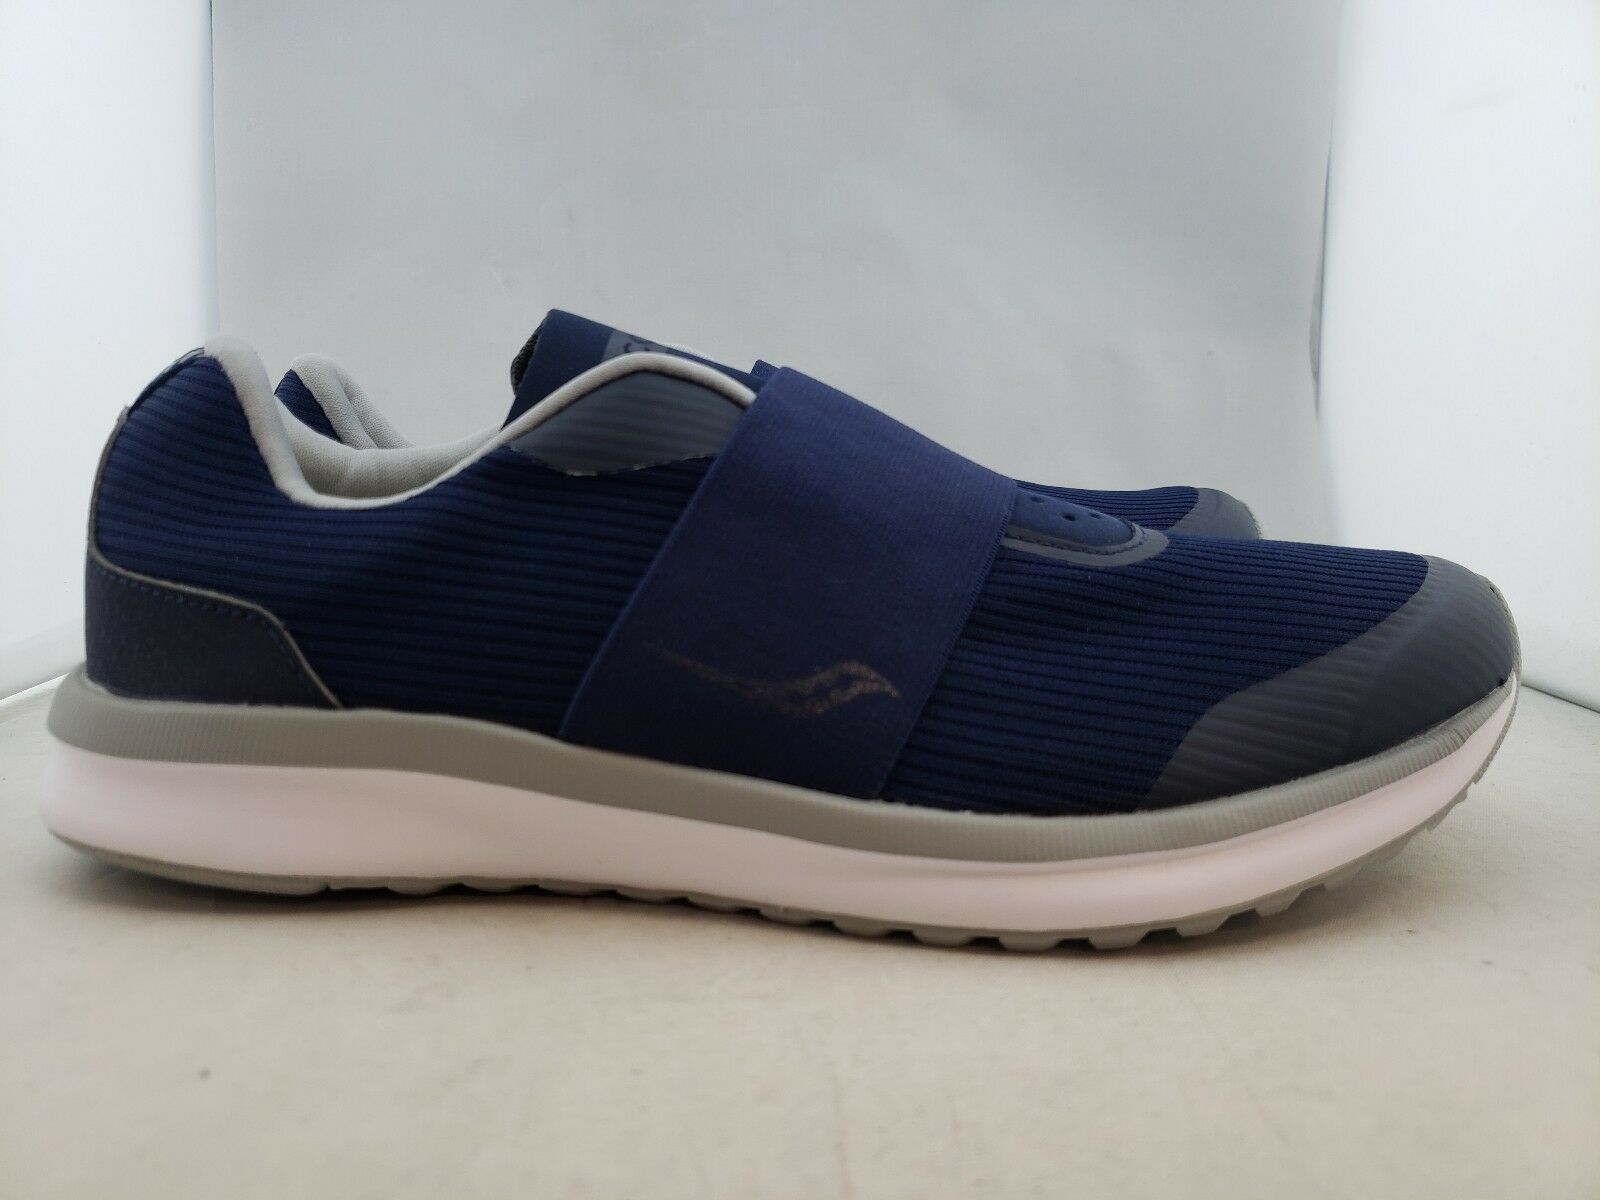 Saucony Strech N Go Smooth Navy Running shoes Women's US 8 (T)